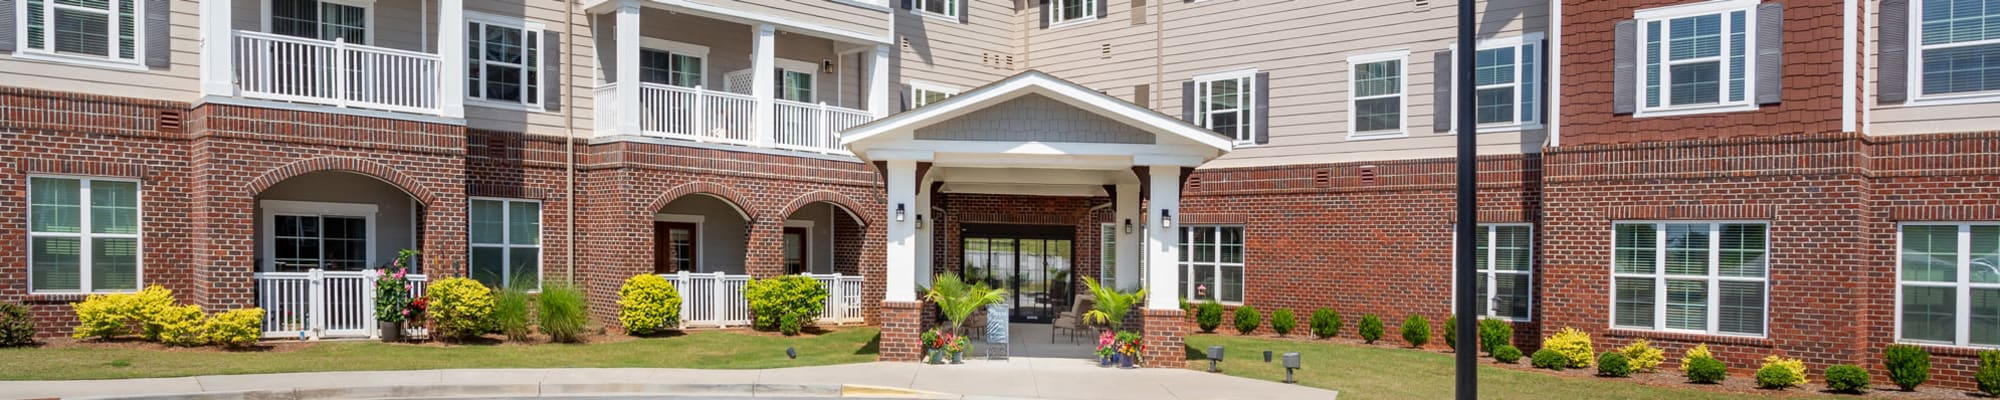 Map & Directions to Harmony at Five Forks in Simpsonville, South Carolina